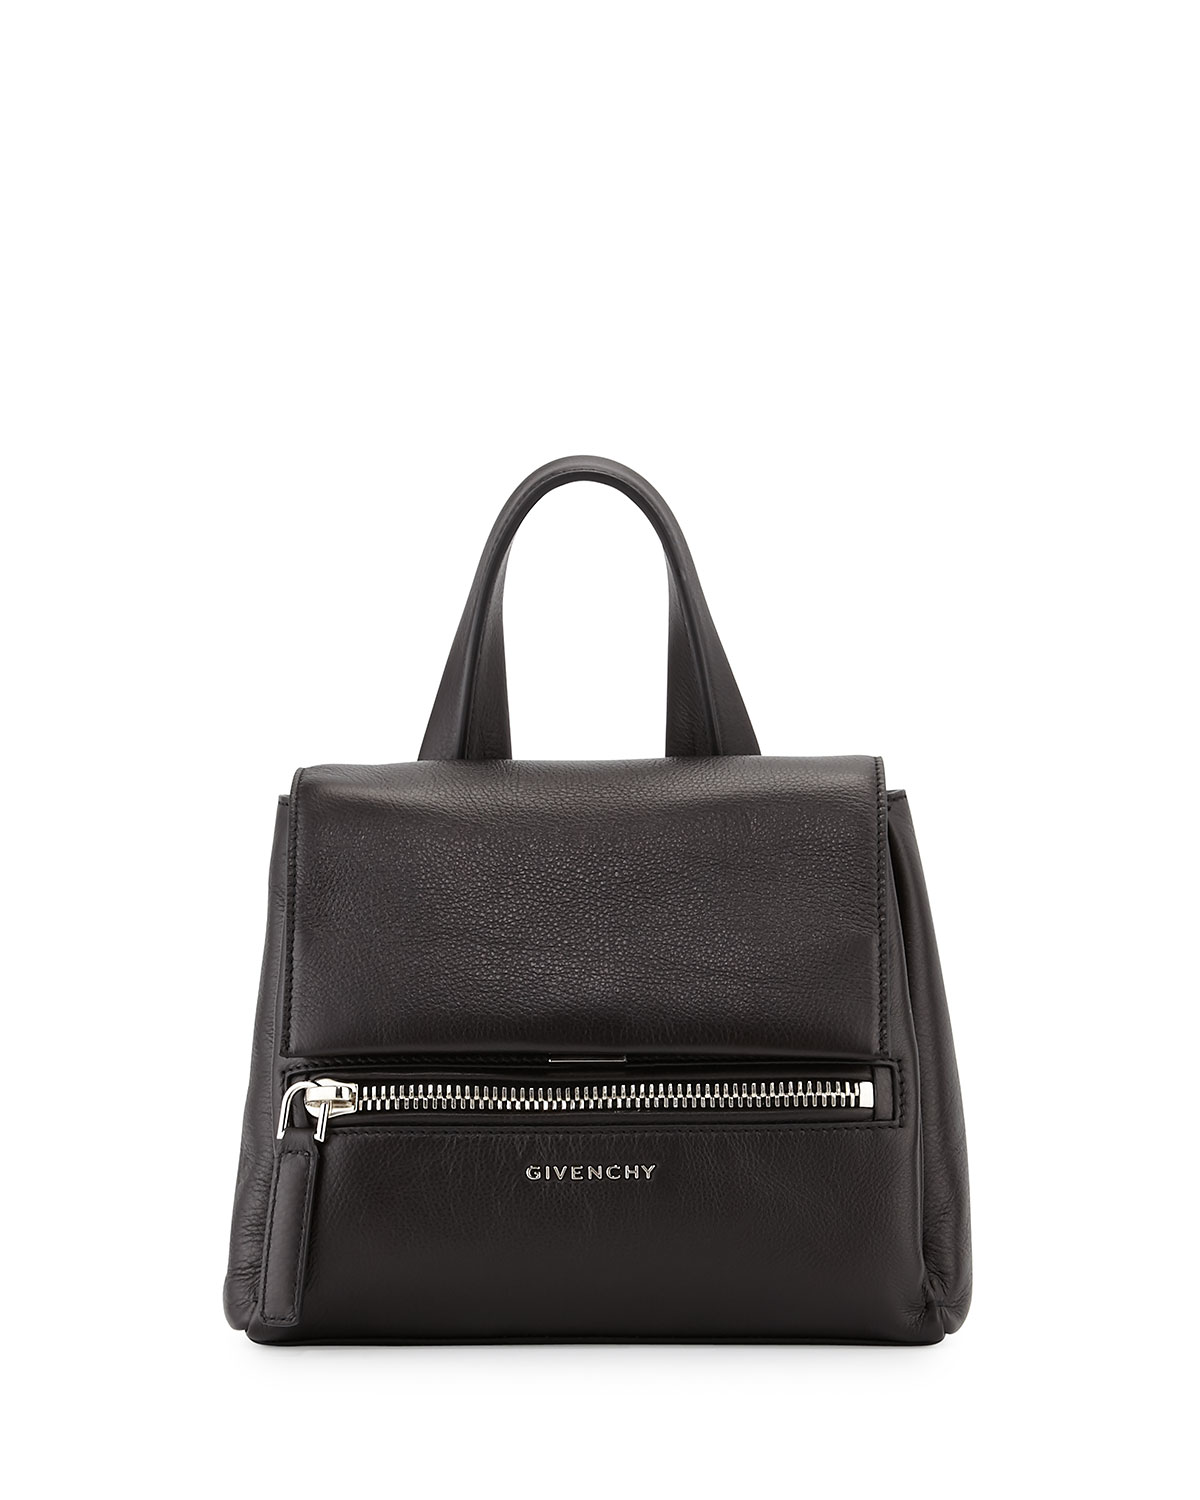 f26e5123b0 Givenchy Pandora Pure Mini Leather Satchel Bag, Black | Neiman Marcus